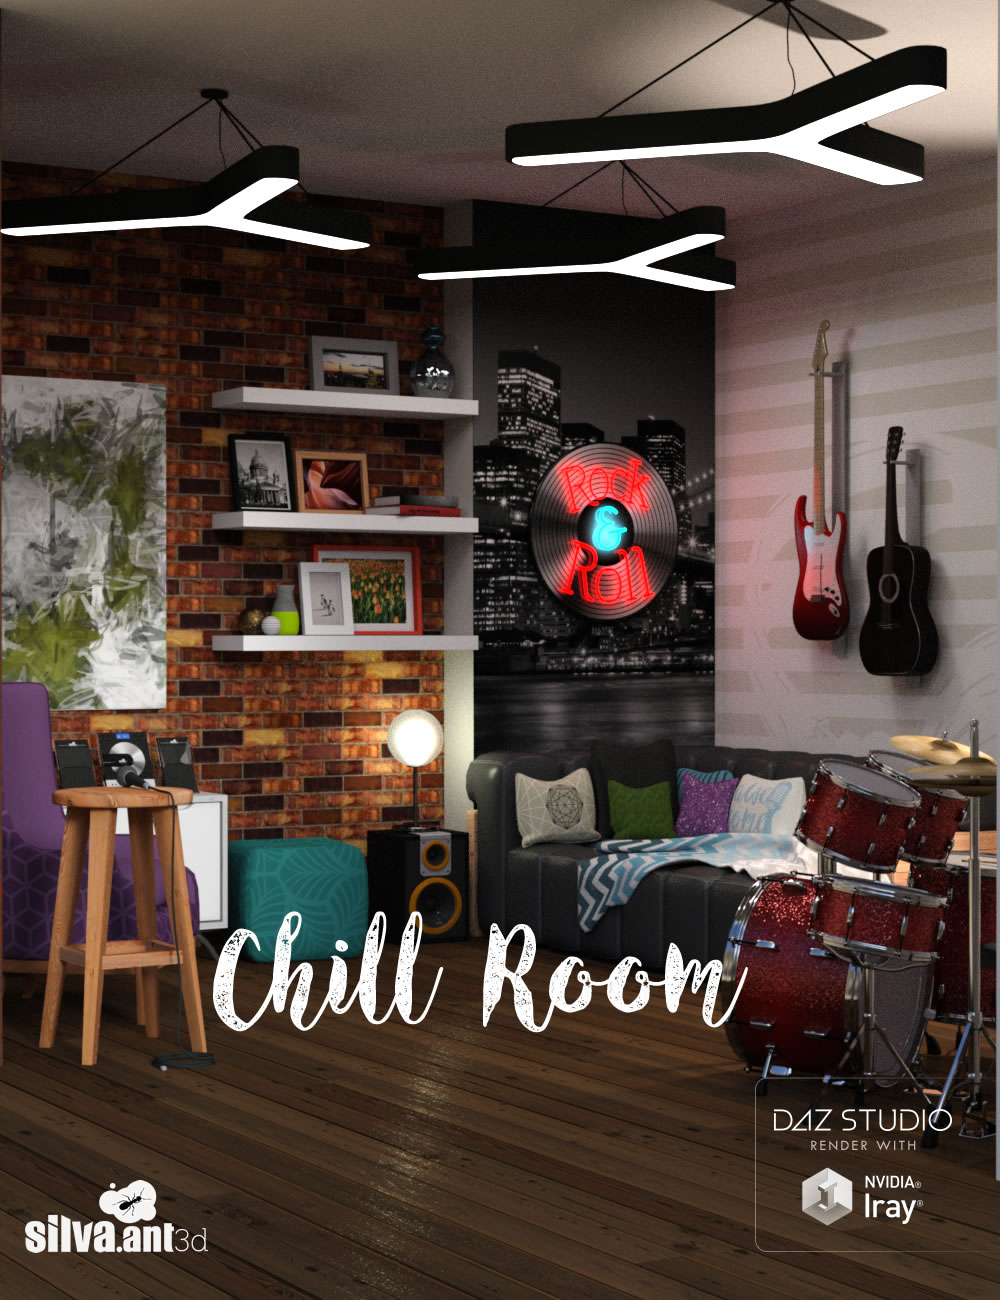 Chill Room by: SilvaAnt3d, 3D Models by Daz 3D